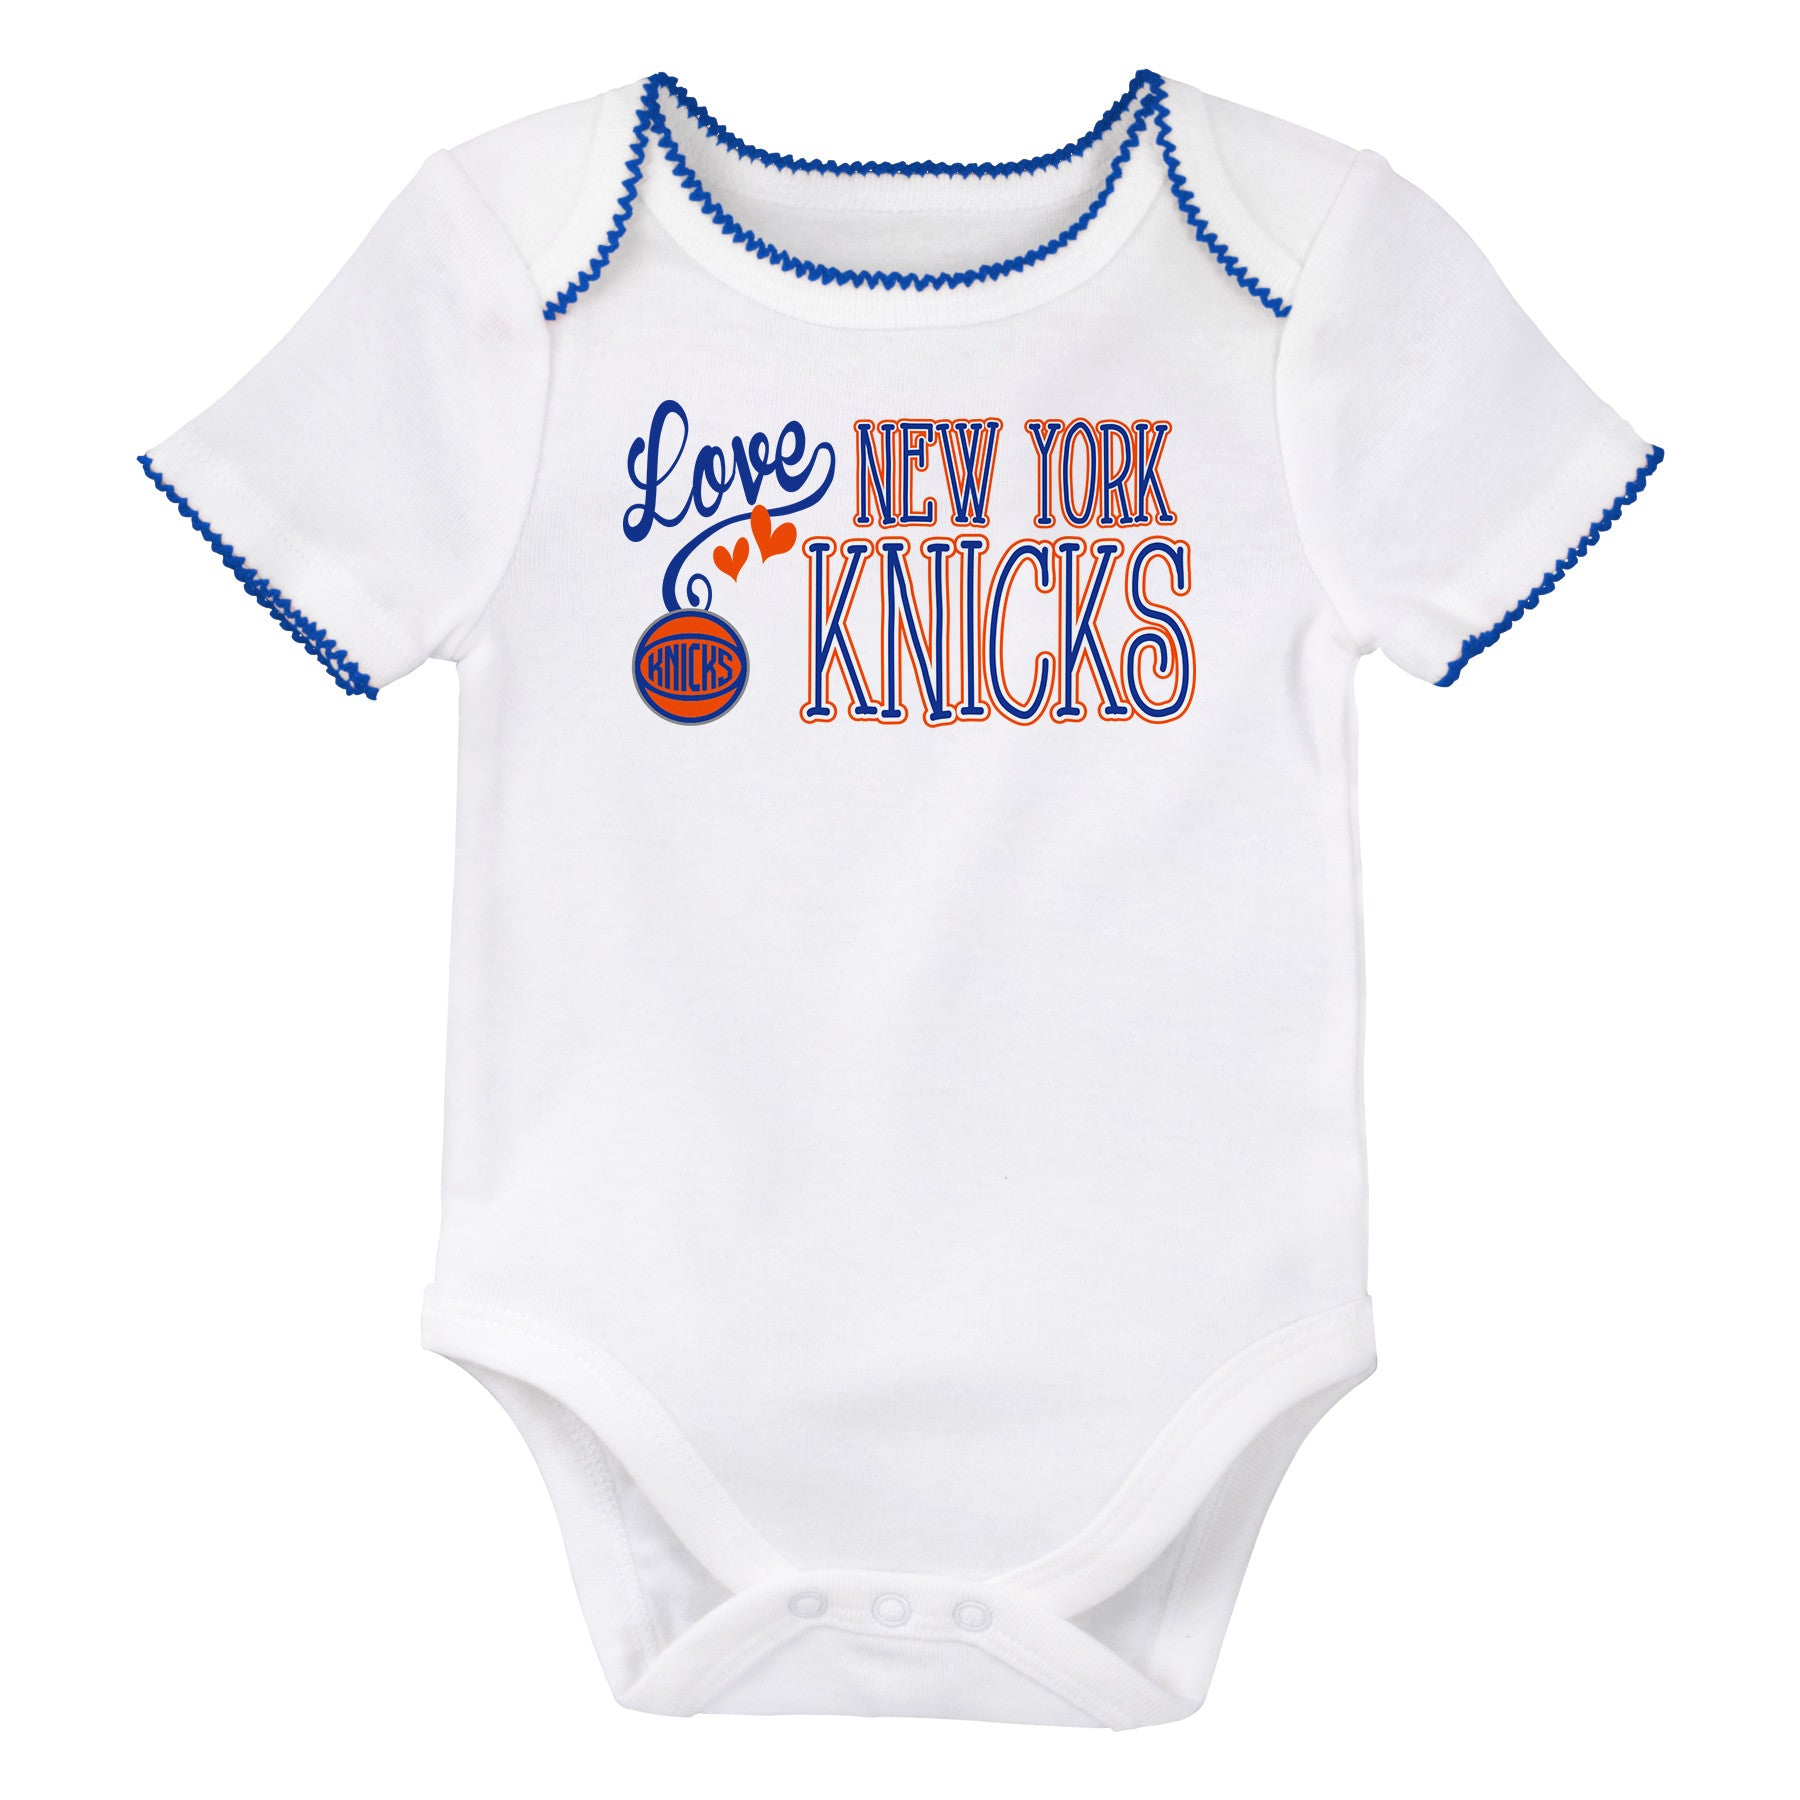 Spurs Baby Bodysuit Creeper New Adorable Gift